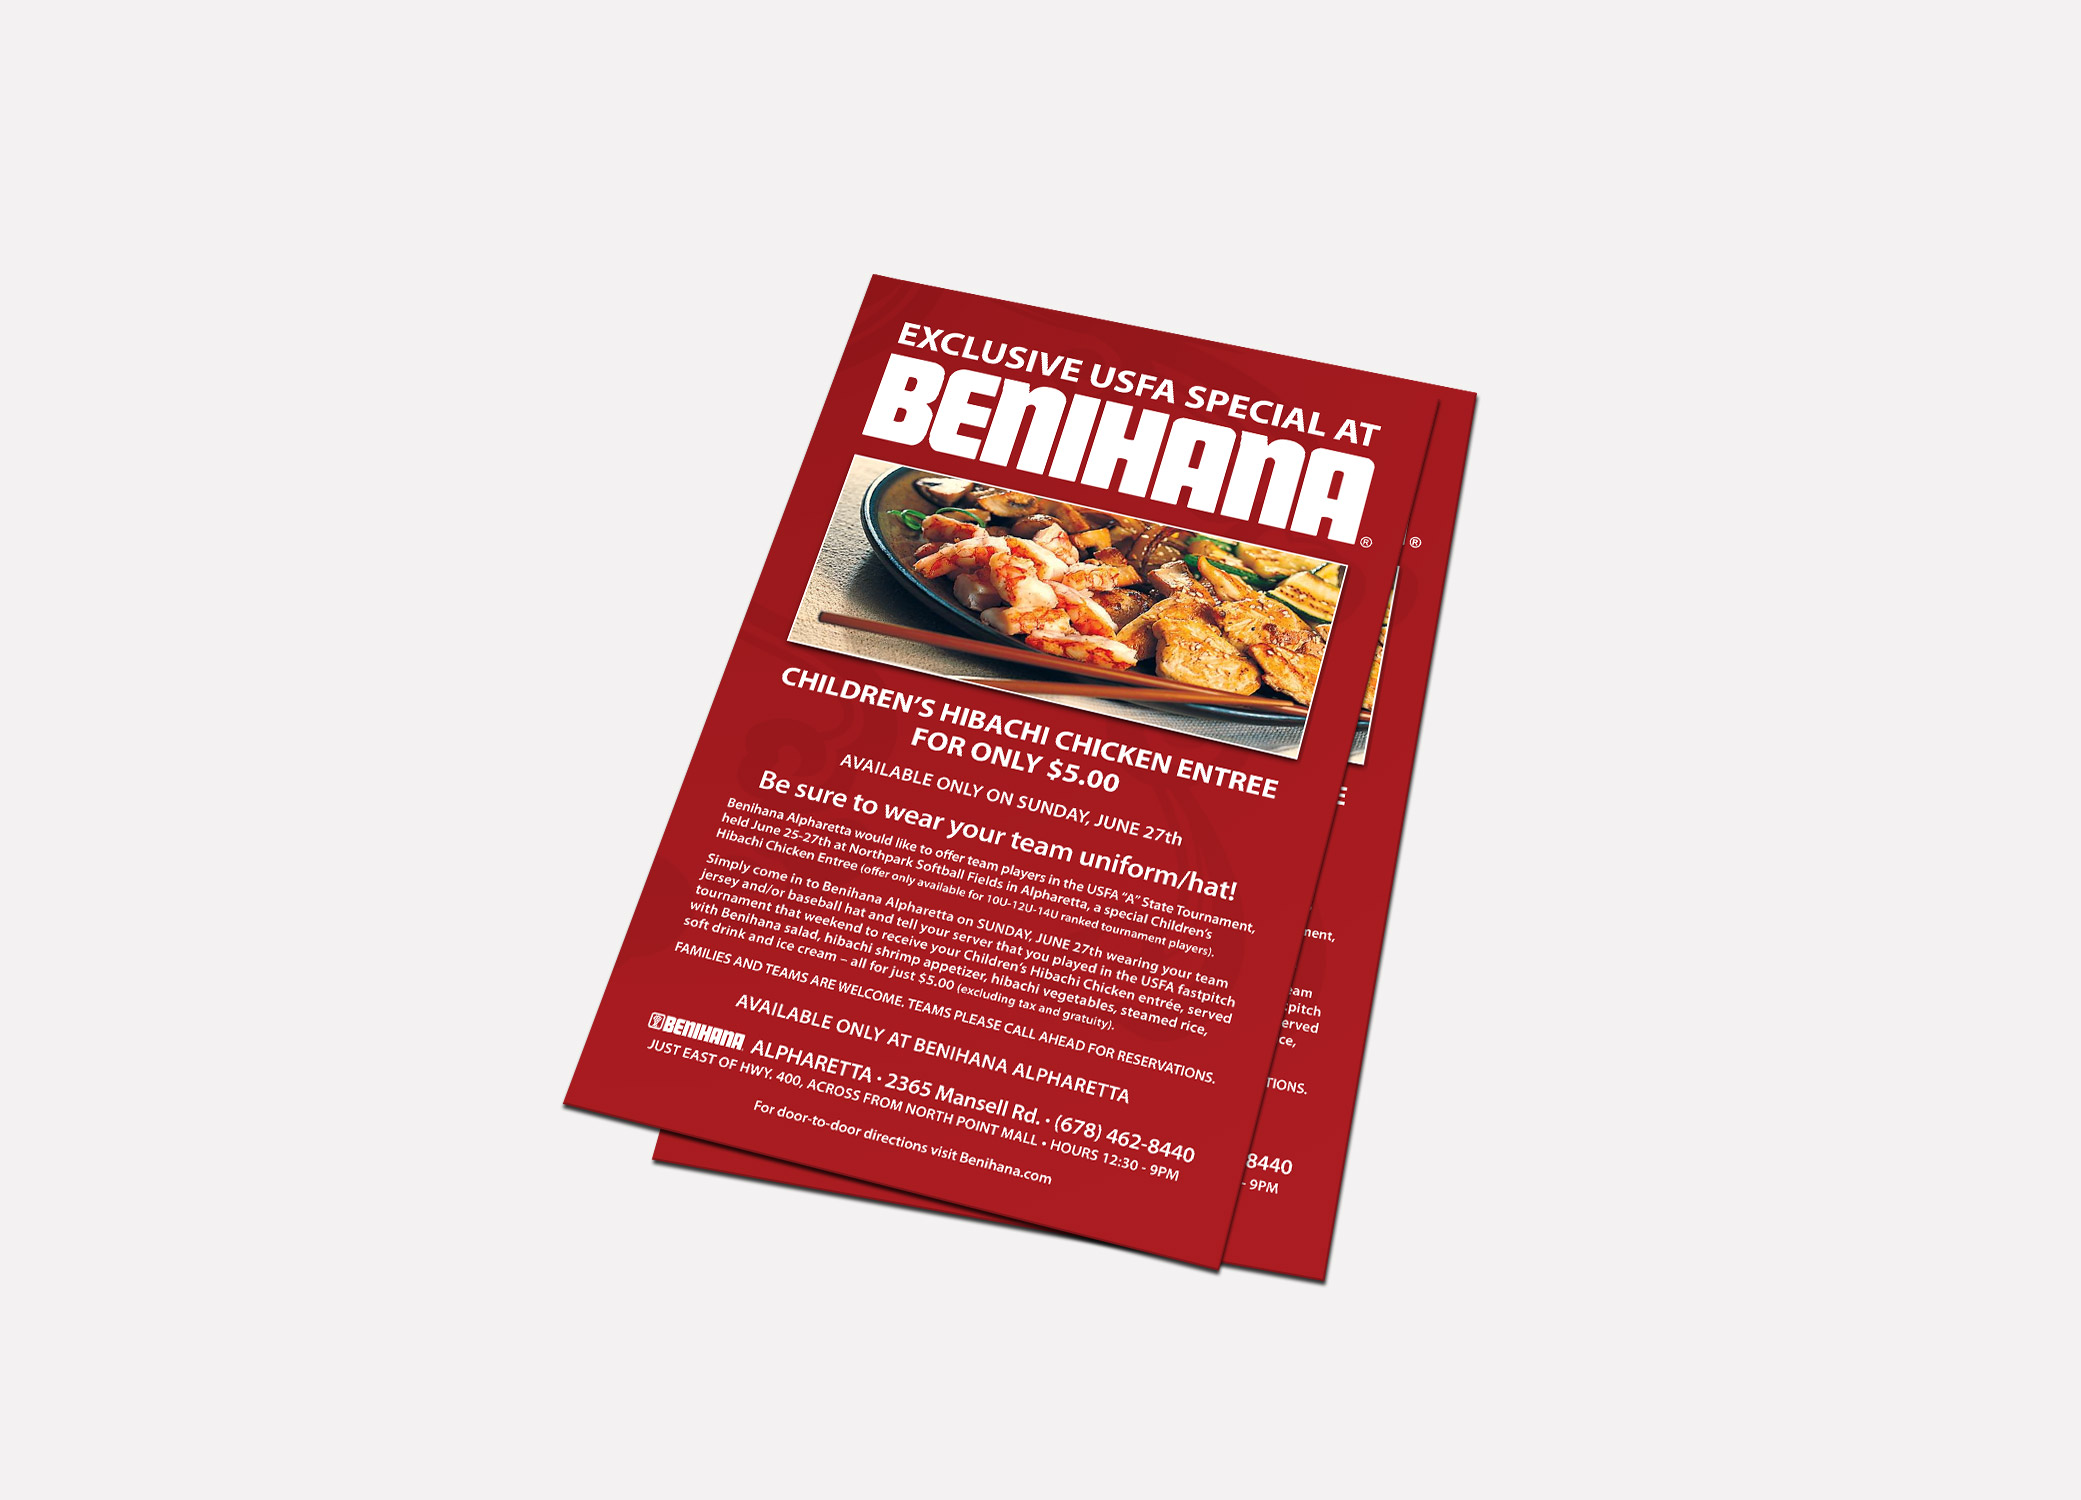 Benihana food brand design for print marketing materials in red featuring the restaurant's exclusive entree.